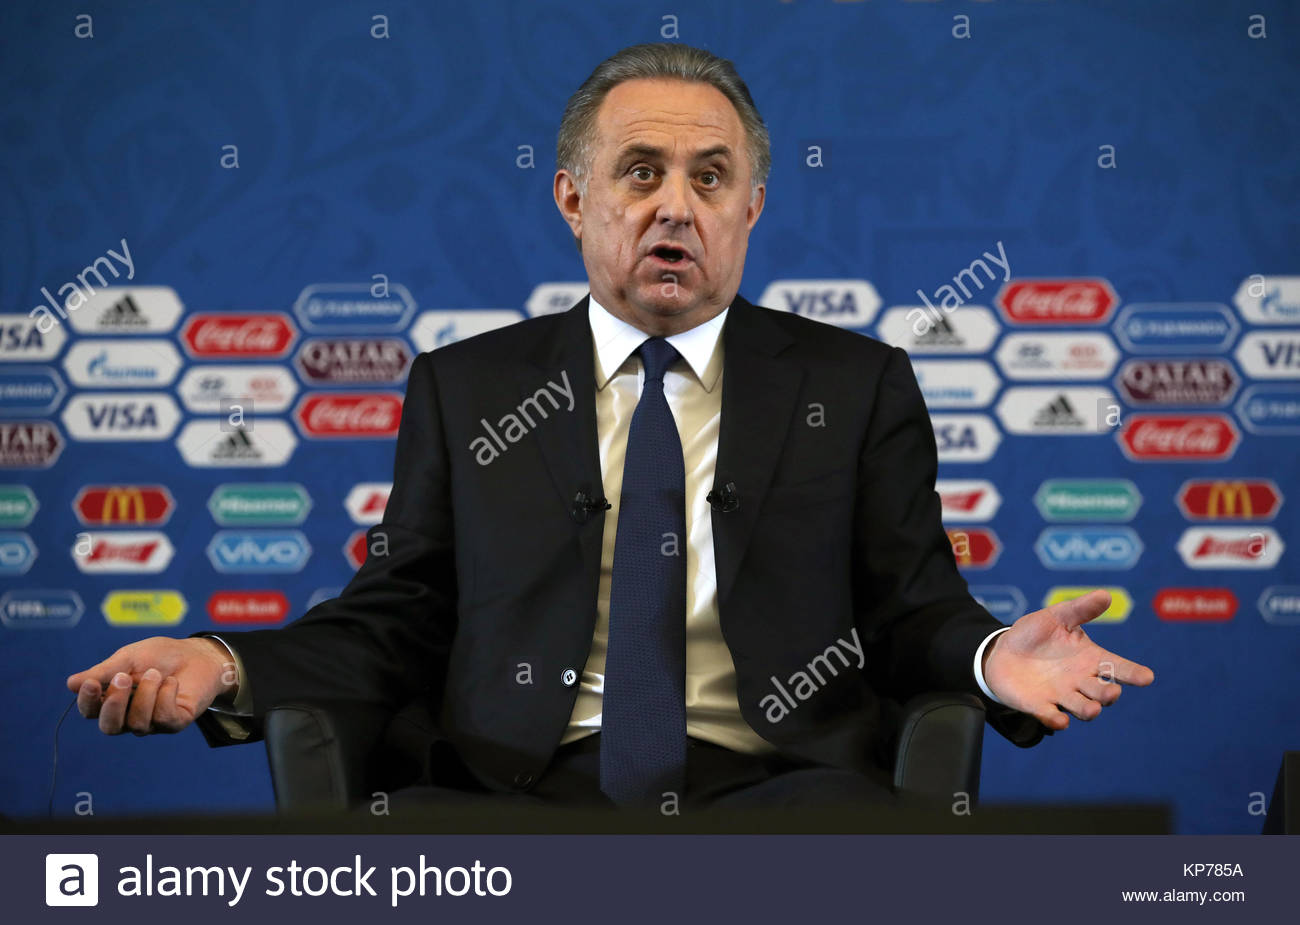 File photo dated 01-12-2017 of Vitaly Mutko, president of the Russian Football Union. - Stock Image